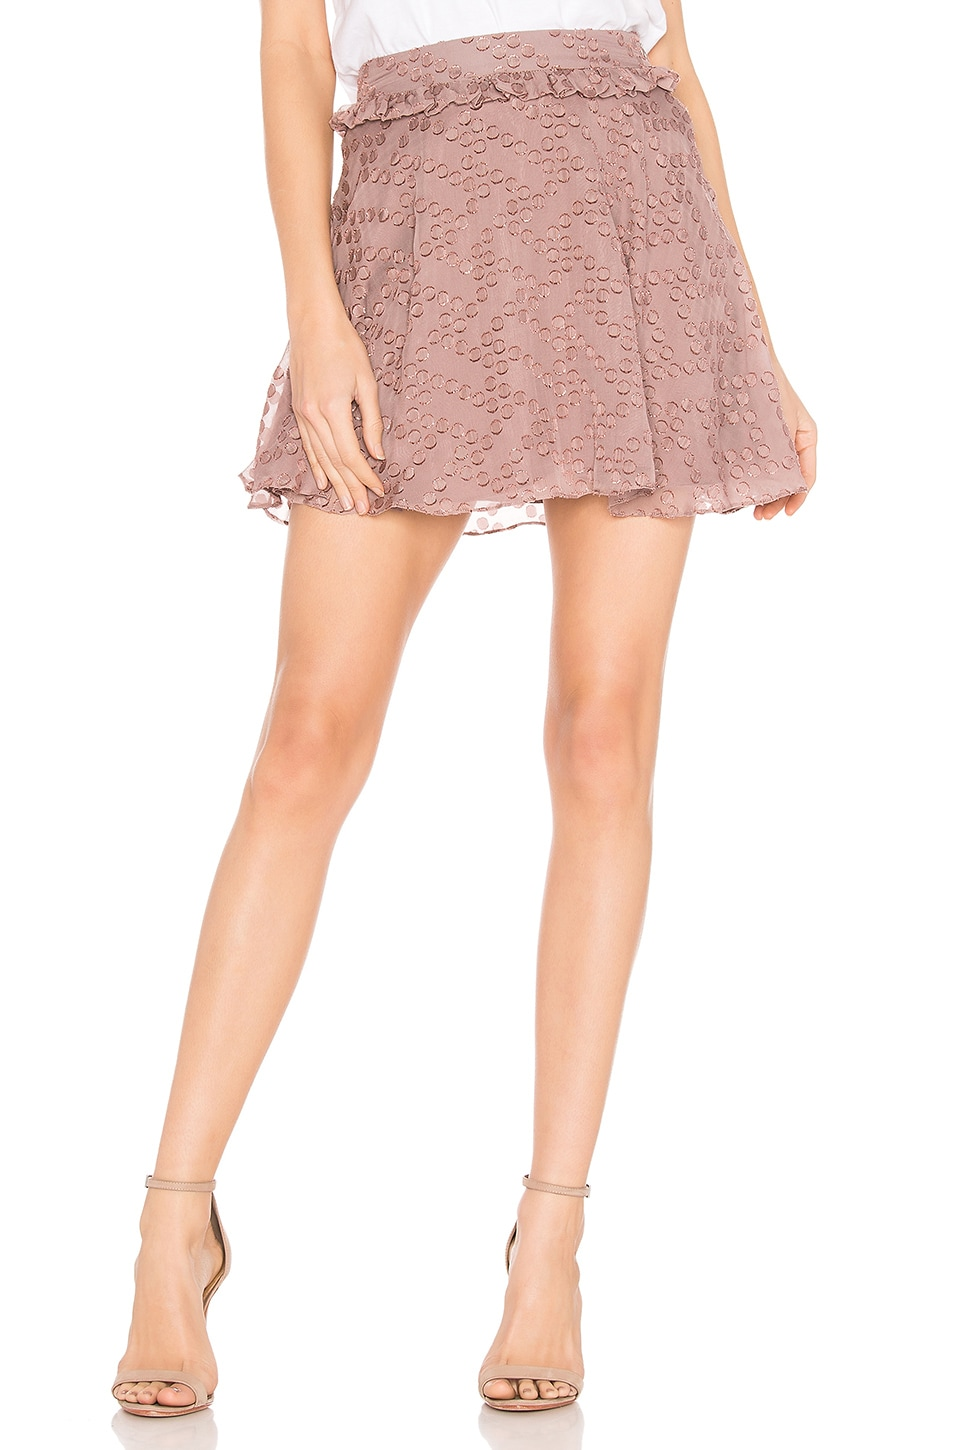 House of Harlow 1960 x REVOLVE Deni Skirt in Mauve Purple